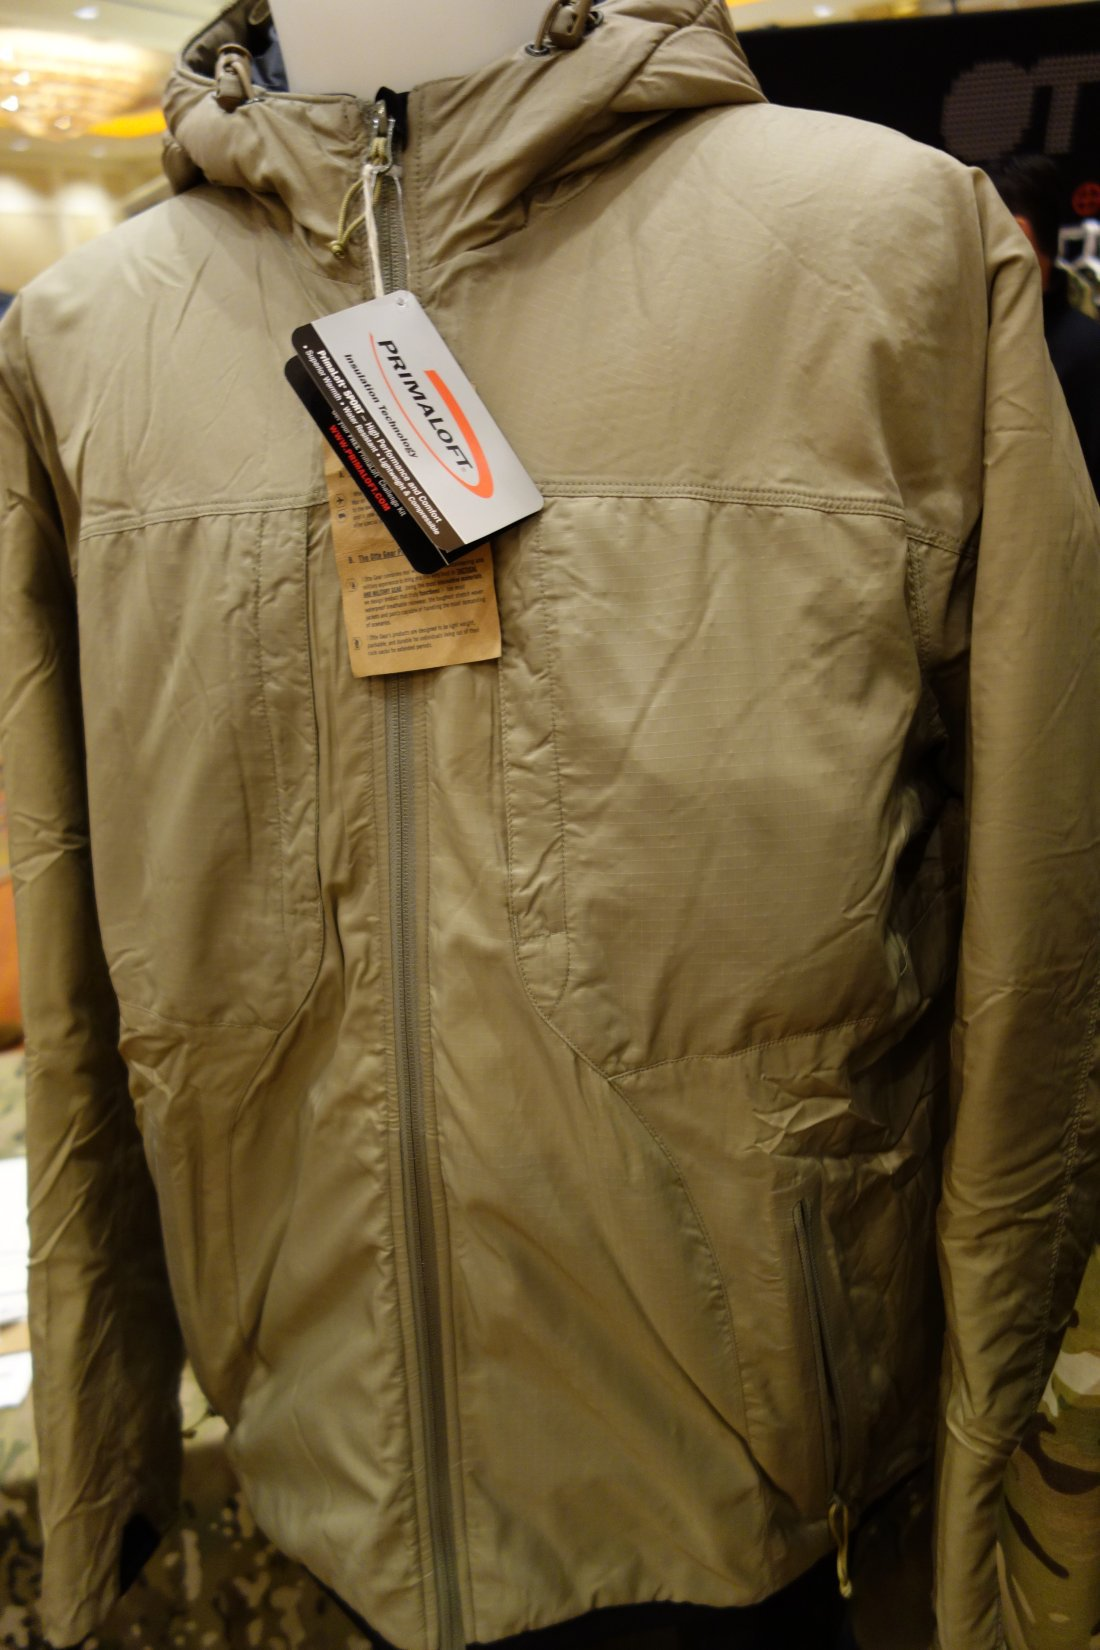 Otte Gear (OG) Helo Jacket: Collapsible and Reversable Lightweight Synthetic-Fill Insulated Combat/Tactical Jacket with Primaloft Sport (Video!)